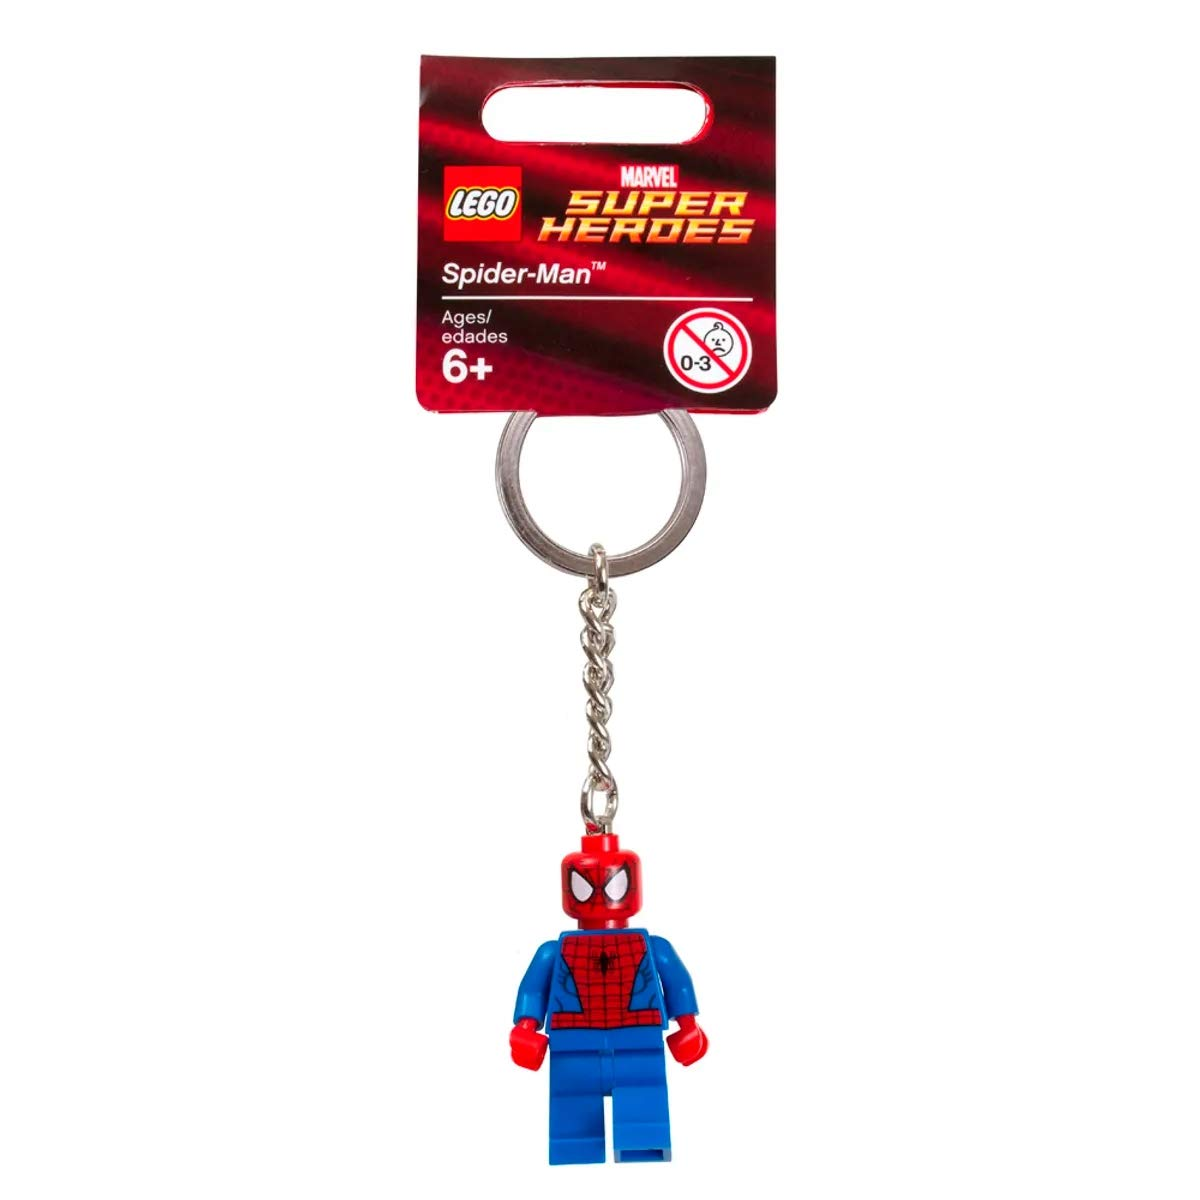 LEGO Marvel Super Heroes Spider-Man Key Chain Juego de construcción - Juegos de construcción (6 año(s))